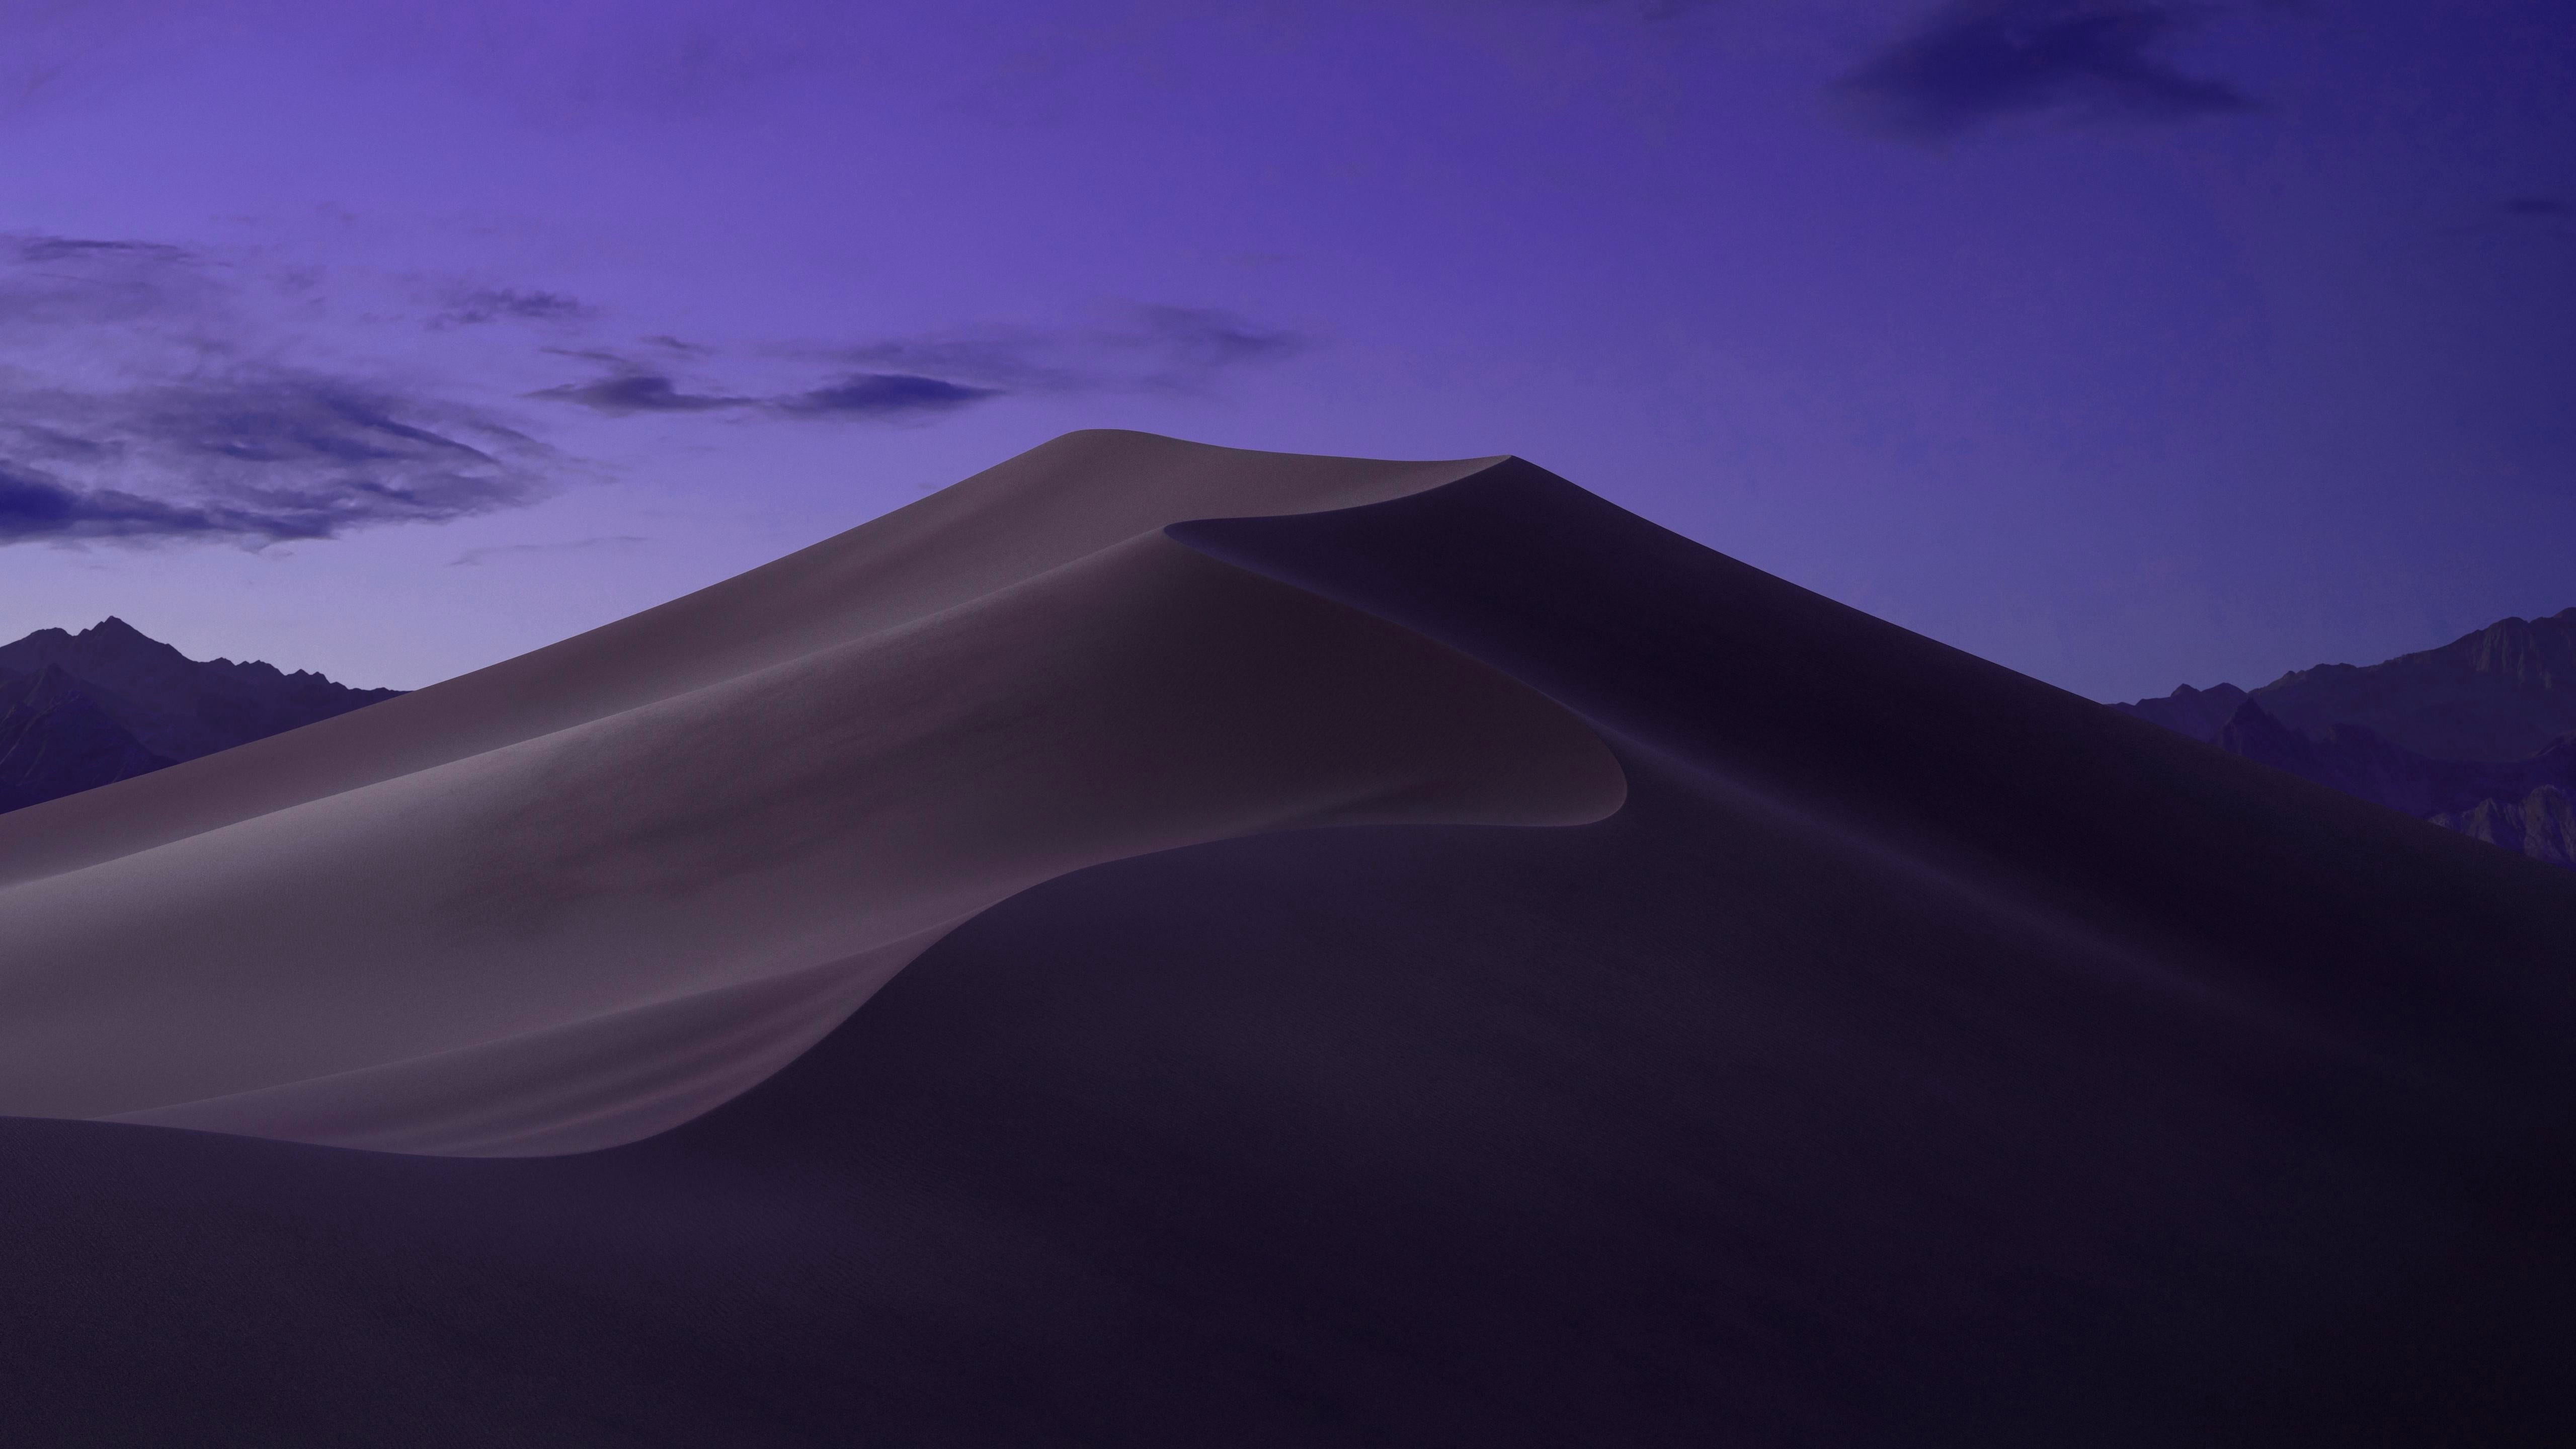 Purple 4k Wallpapers For Your Desktop Or Mobile Screen Free And Easy To Download